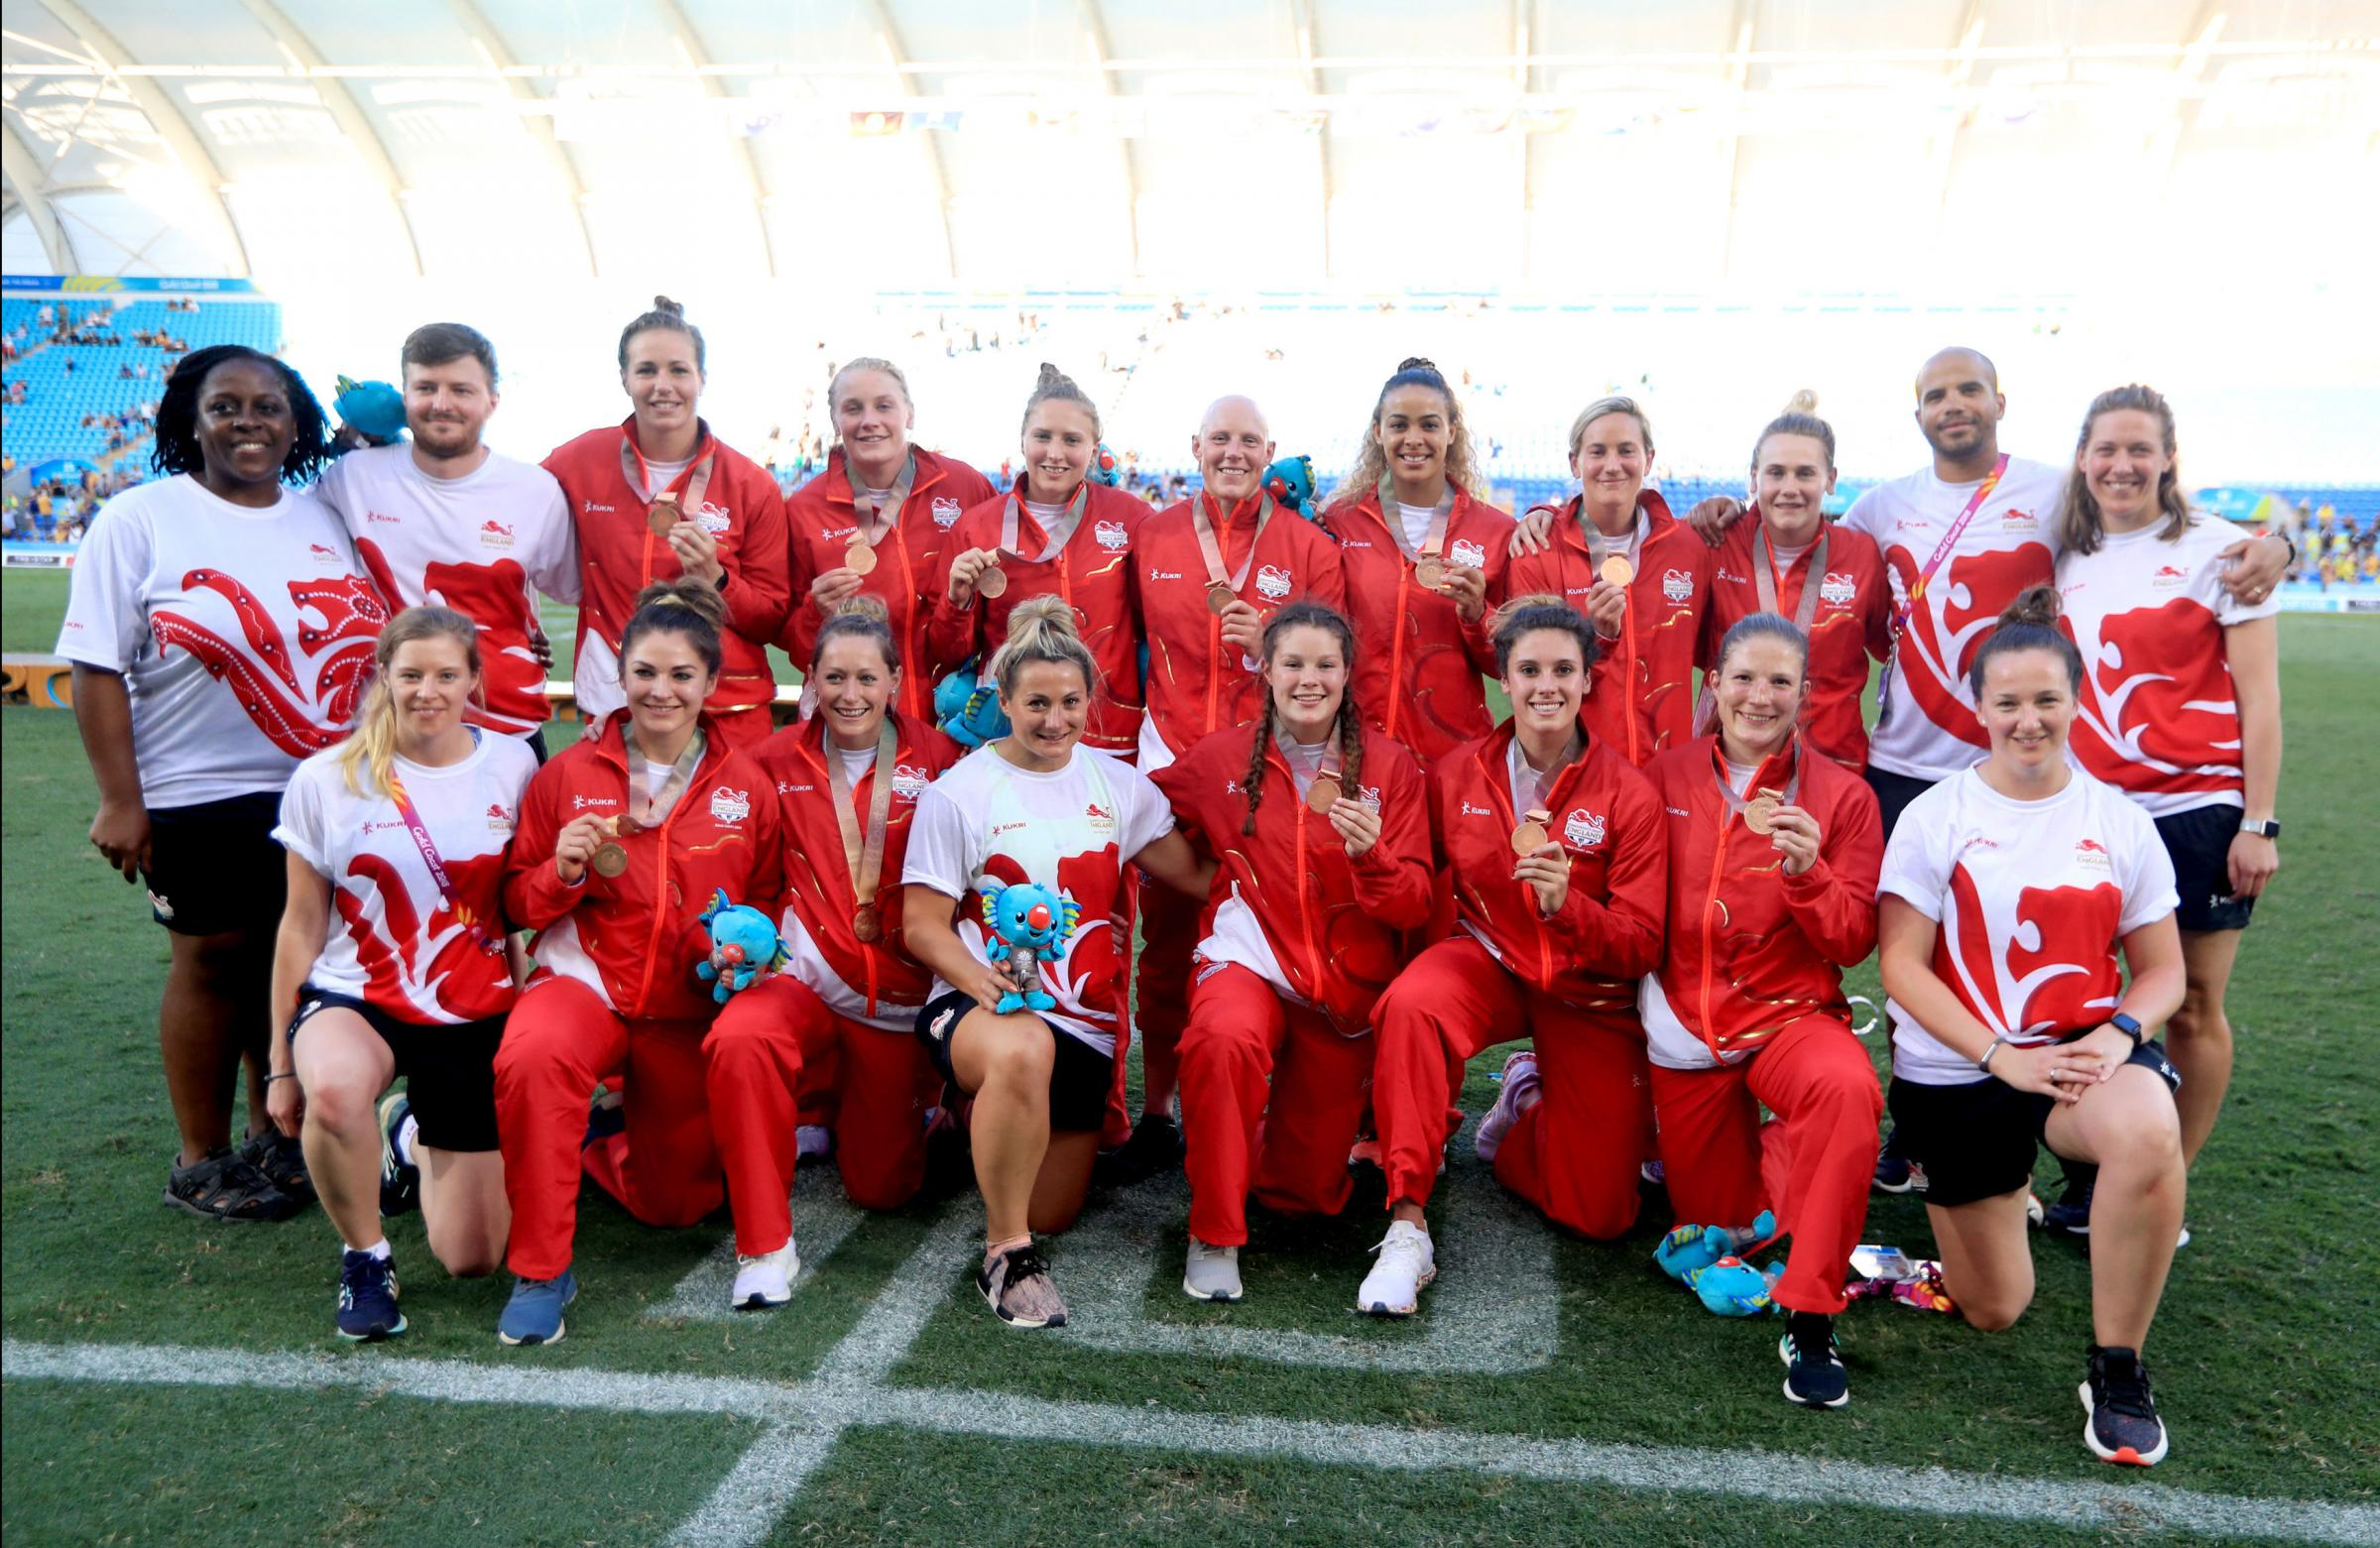 Bronze medallists - Emily Scott, five from left in the back row, and England's rugby sevens squad finished third on Australia's Gold Coast